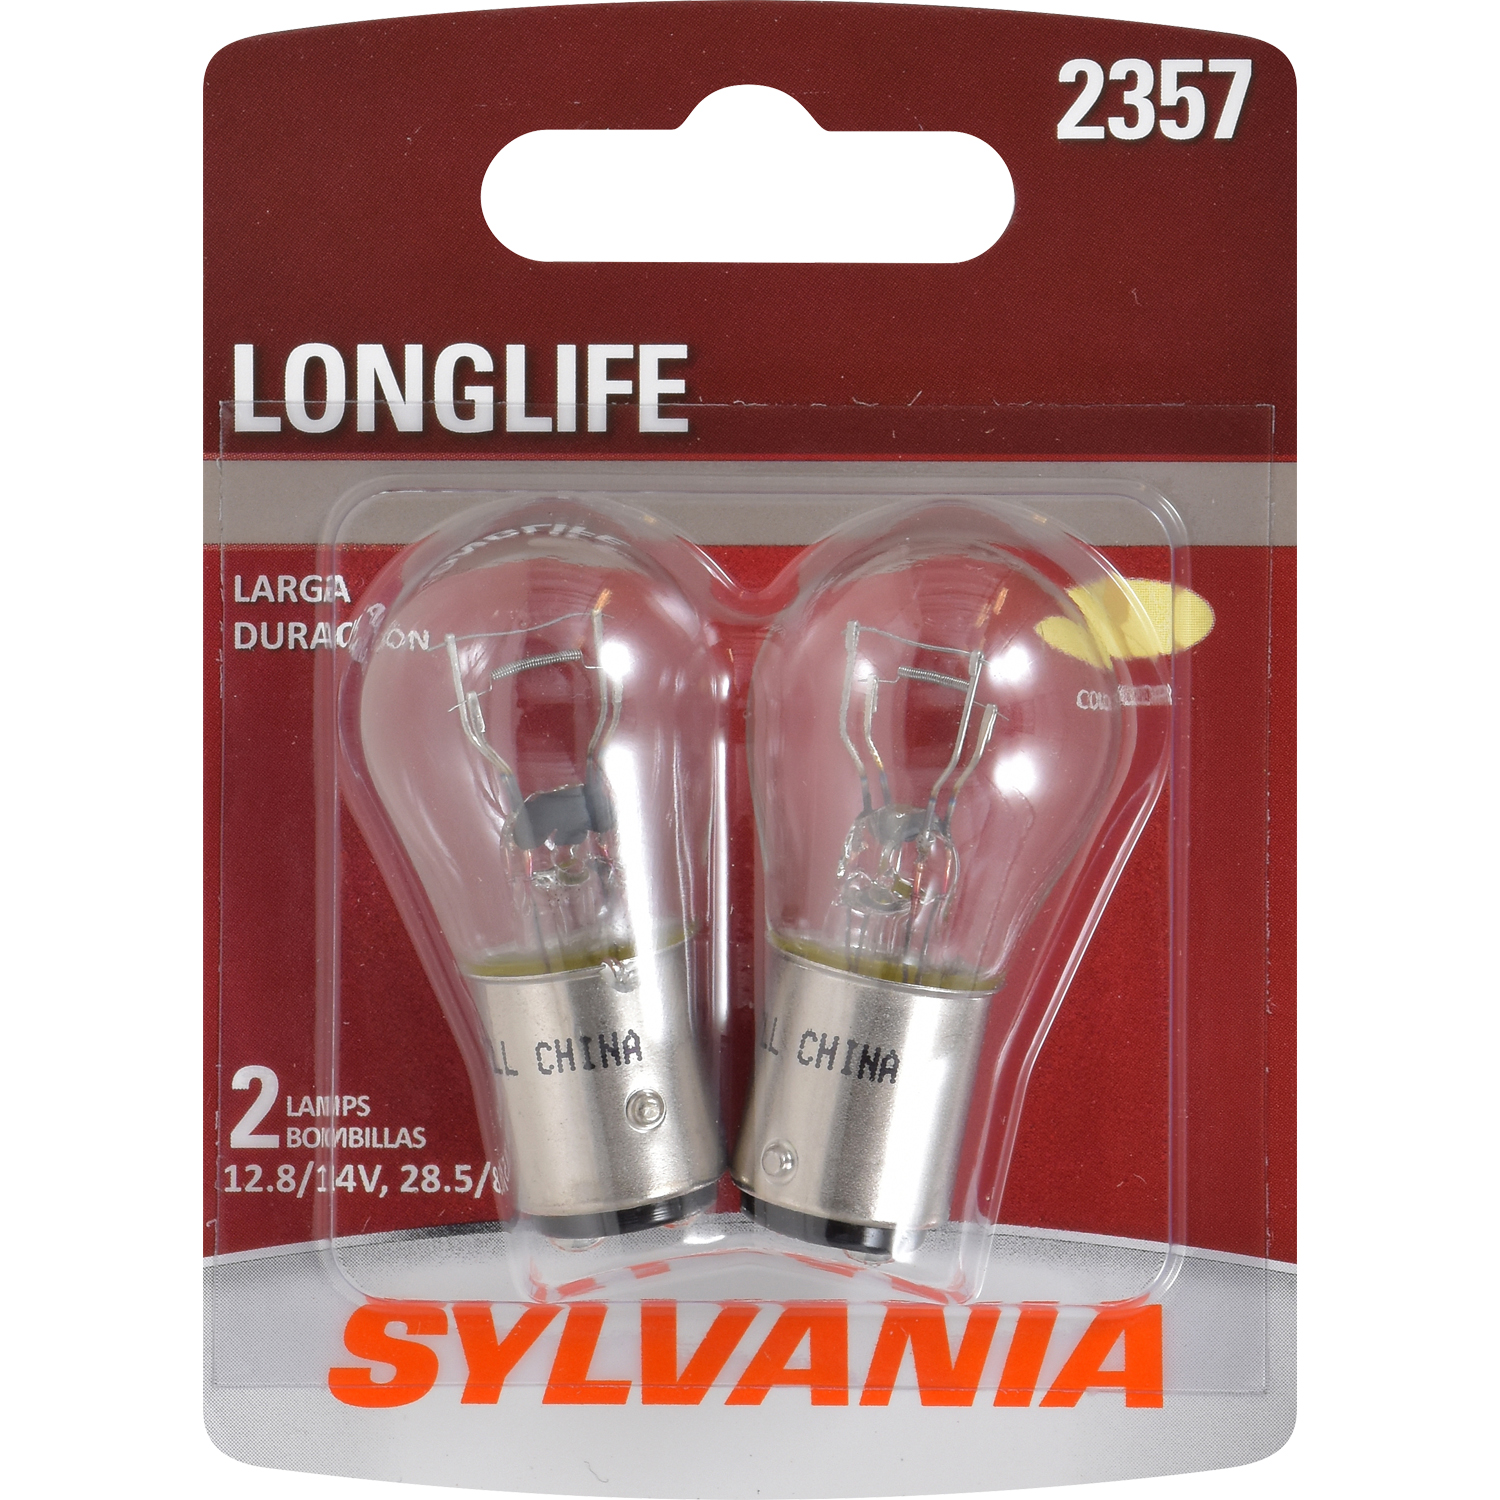 SYLVANIA 2357 Long Life Mini Bulb, Pack of 2